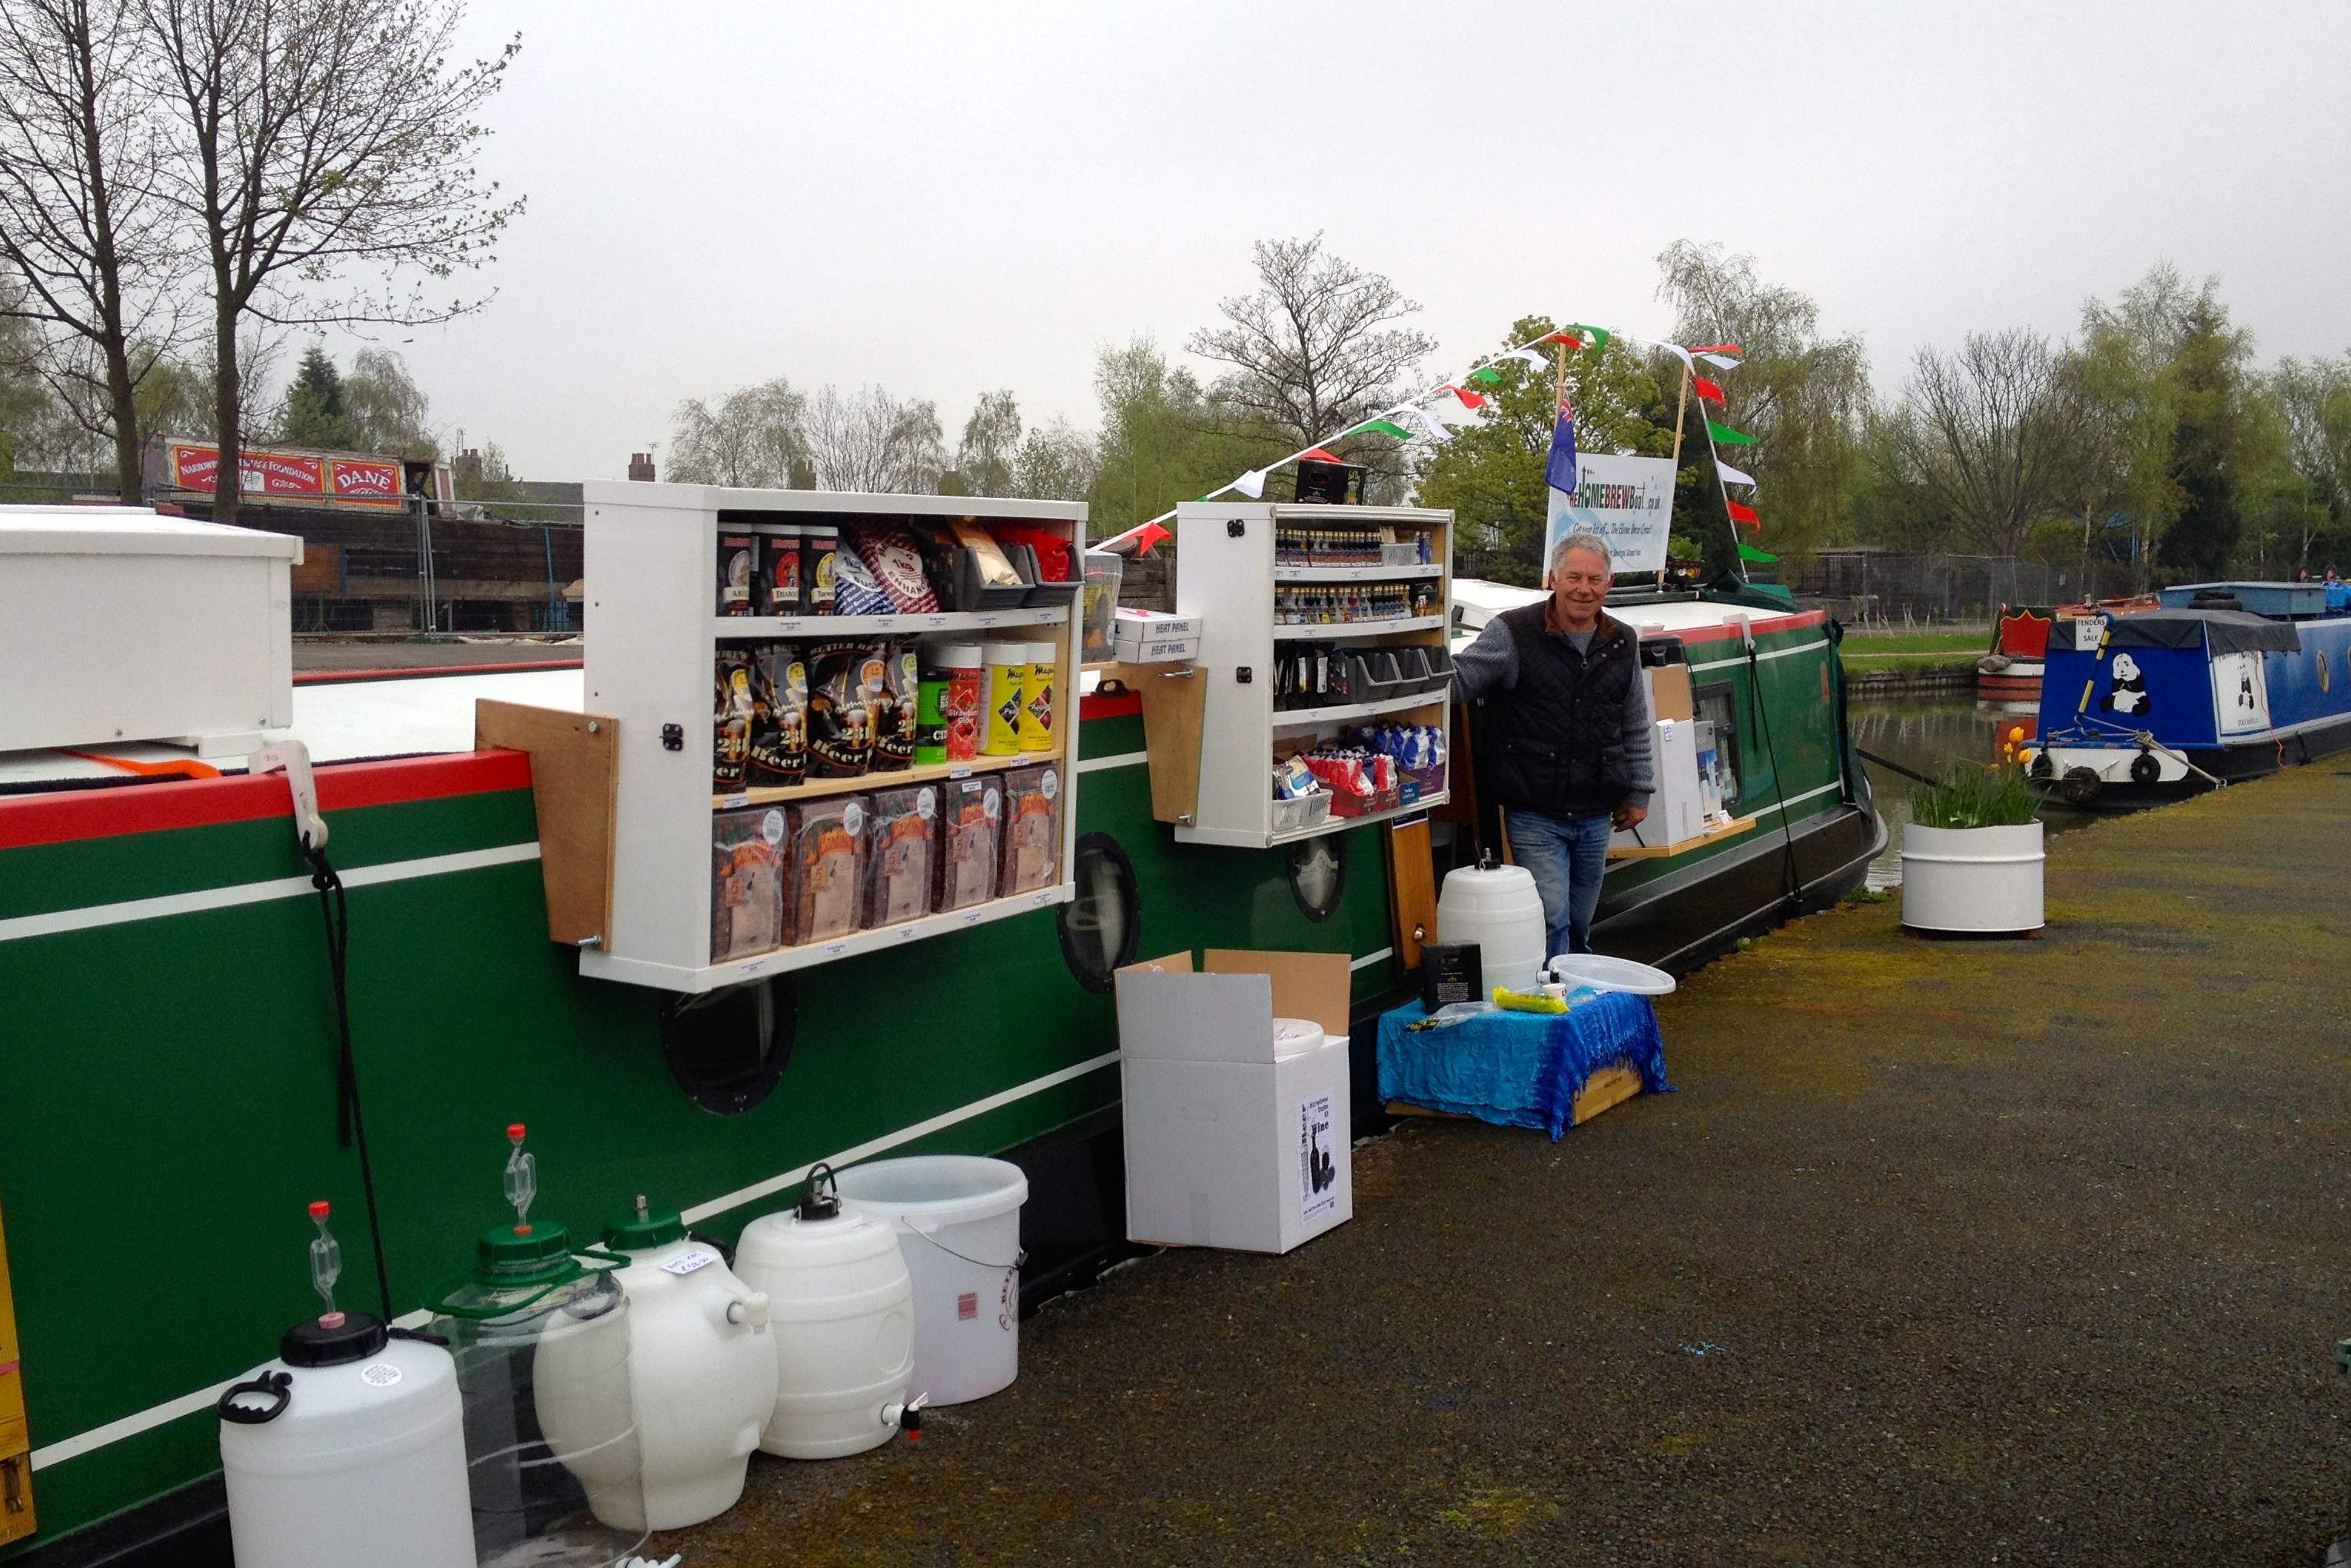 Guess who? Barry's Home Brew Boat of course - selling a multitude of mixes to magically make your own alcoholic beverages